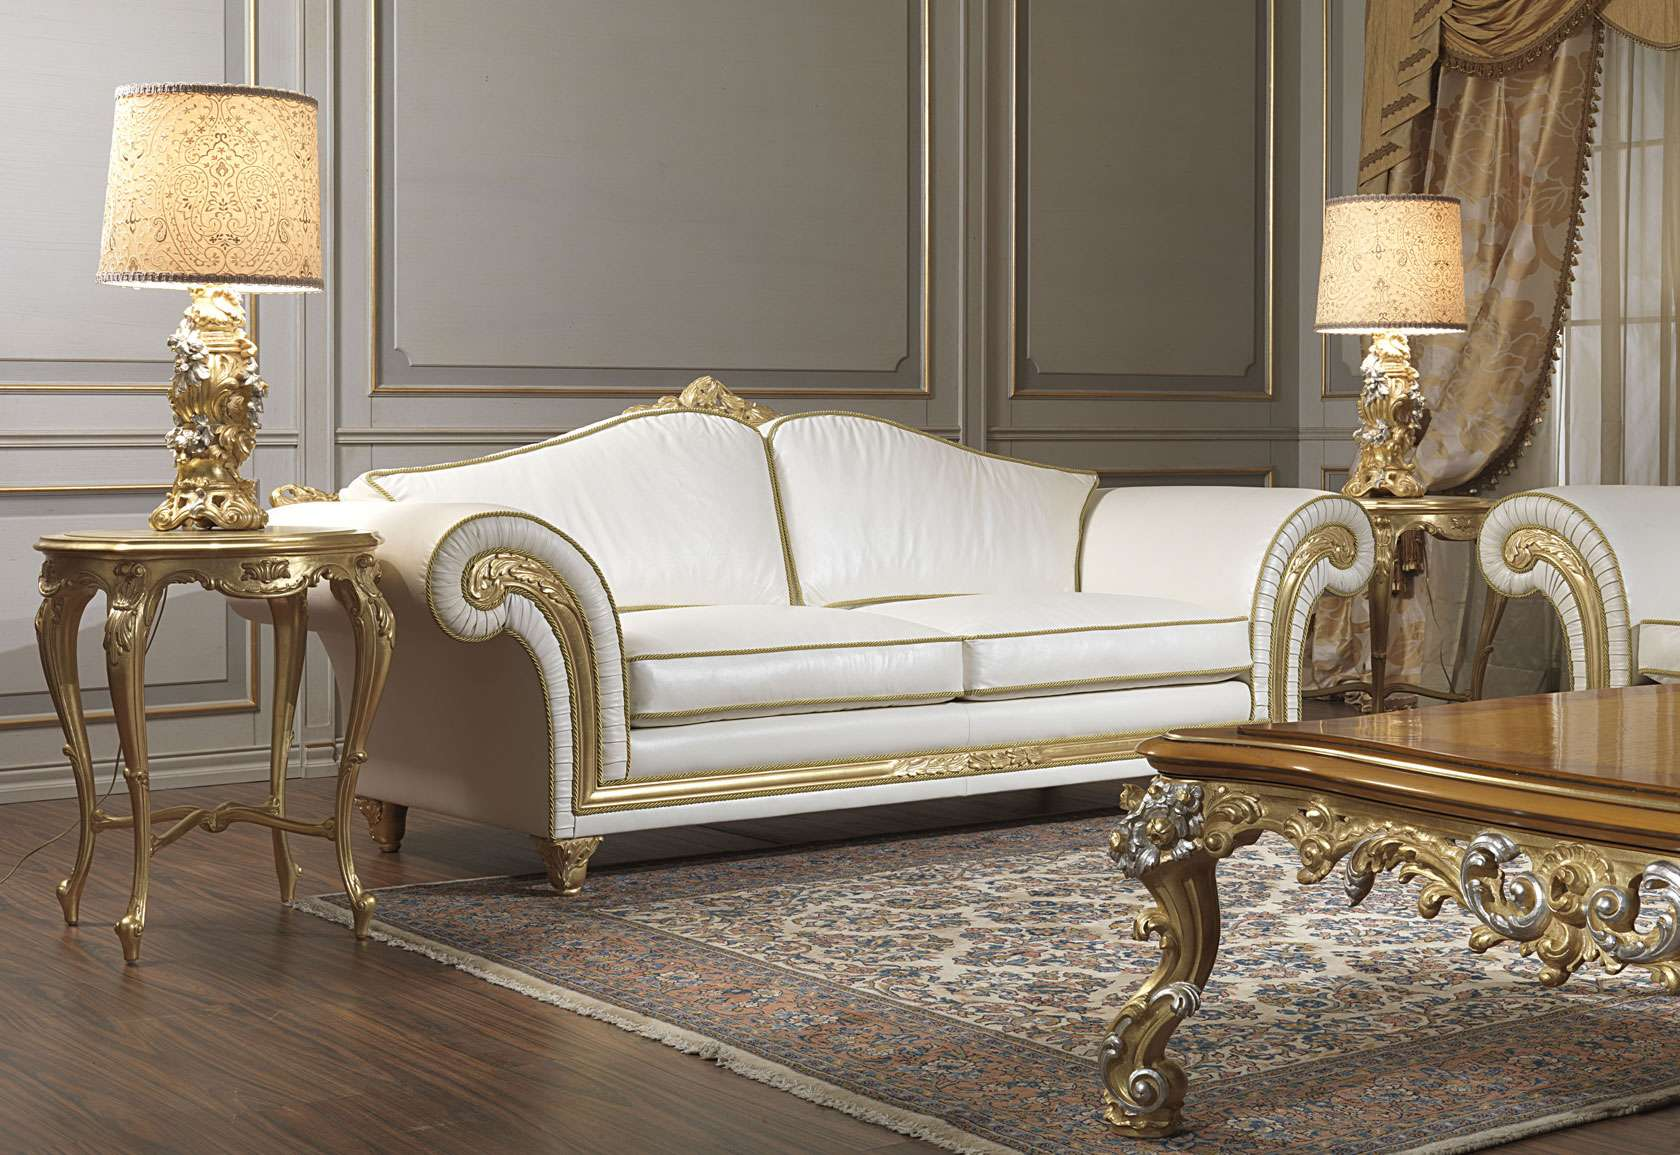 Charmant Classic Sofa Imperial In White Leather